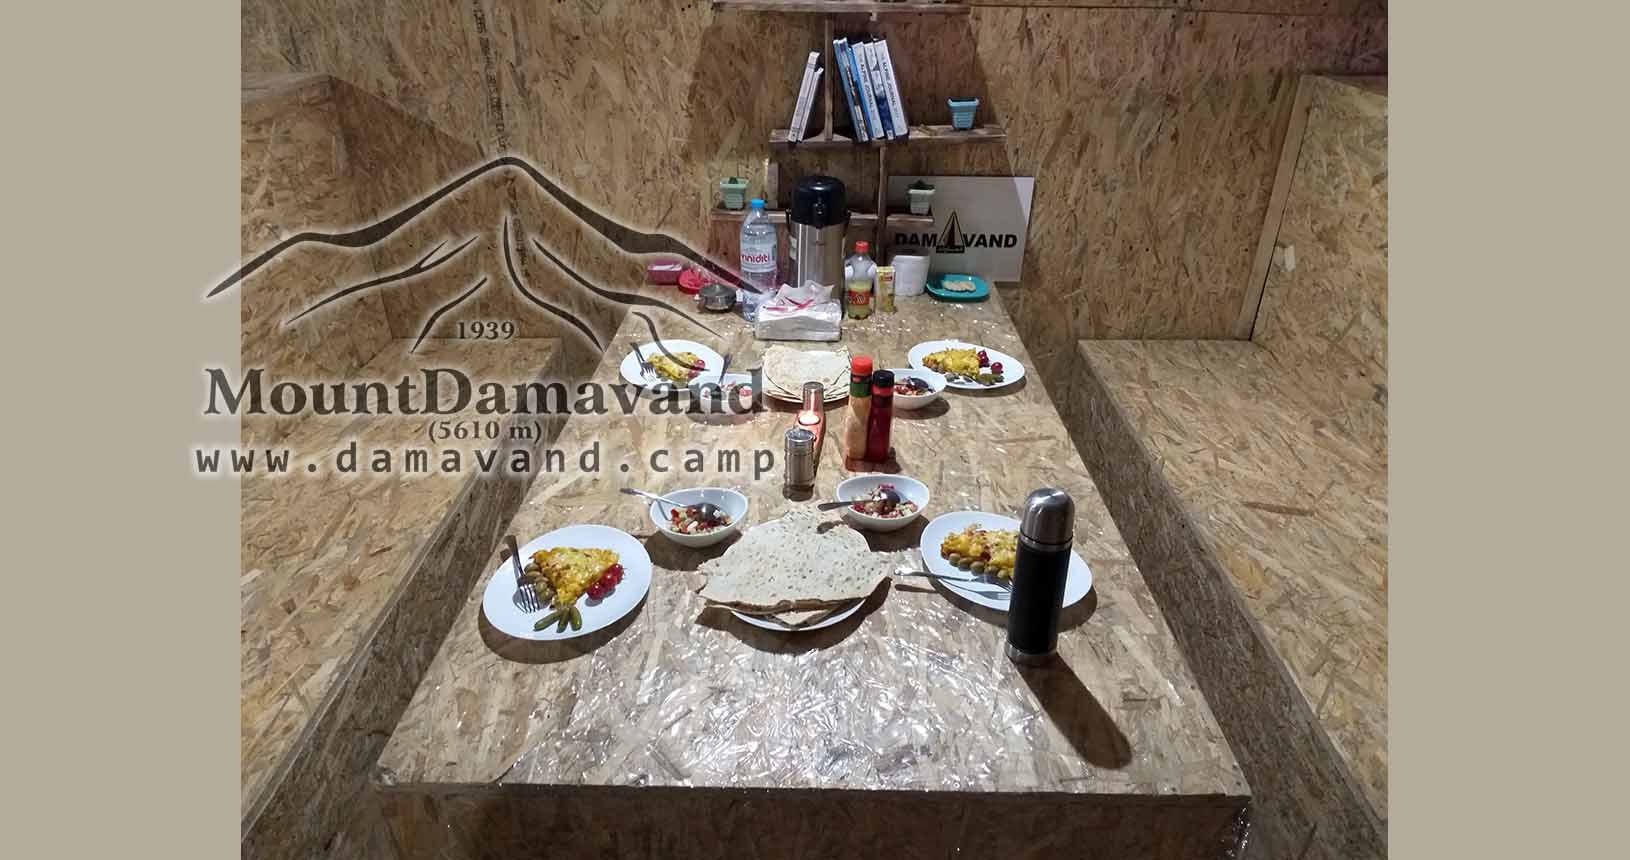 Meals in Damavand Camp 3 (Renovated Old Hut)